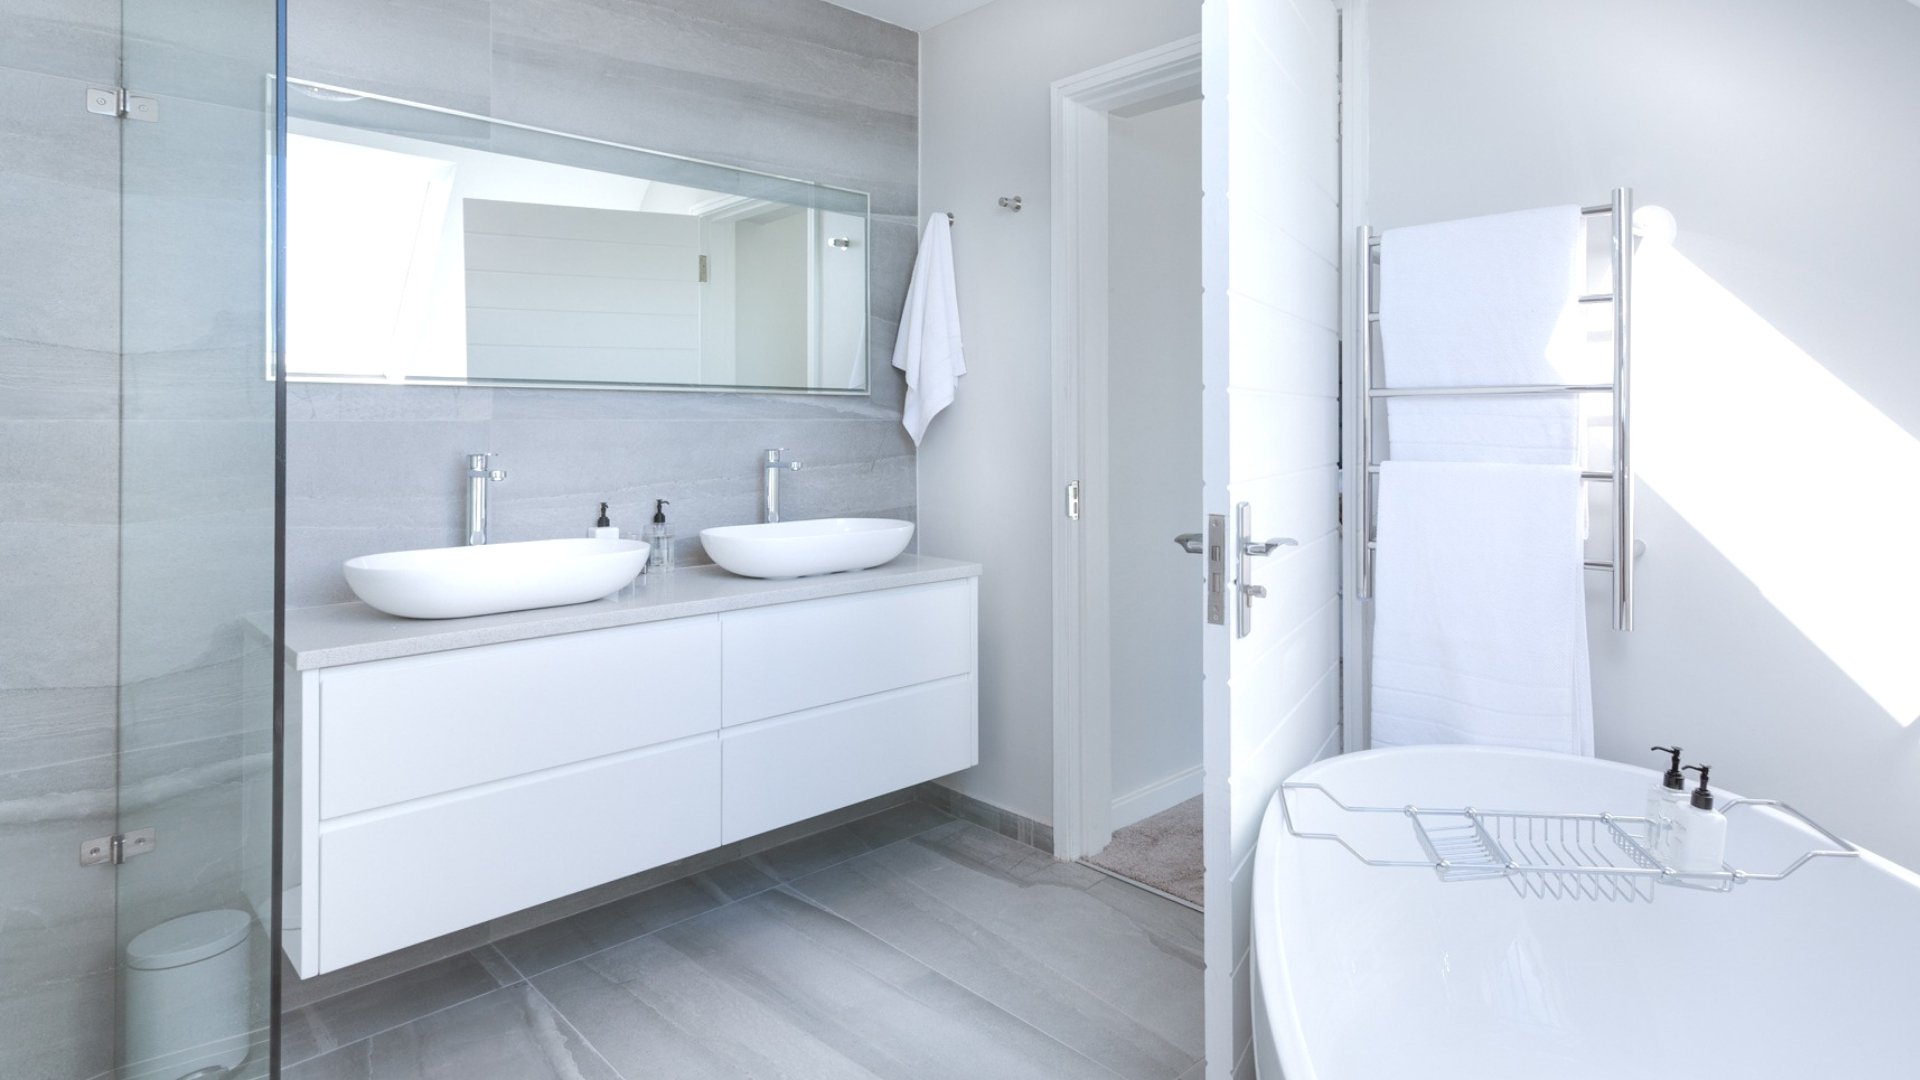 Bathroom in Zoned House